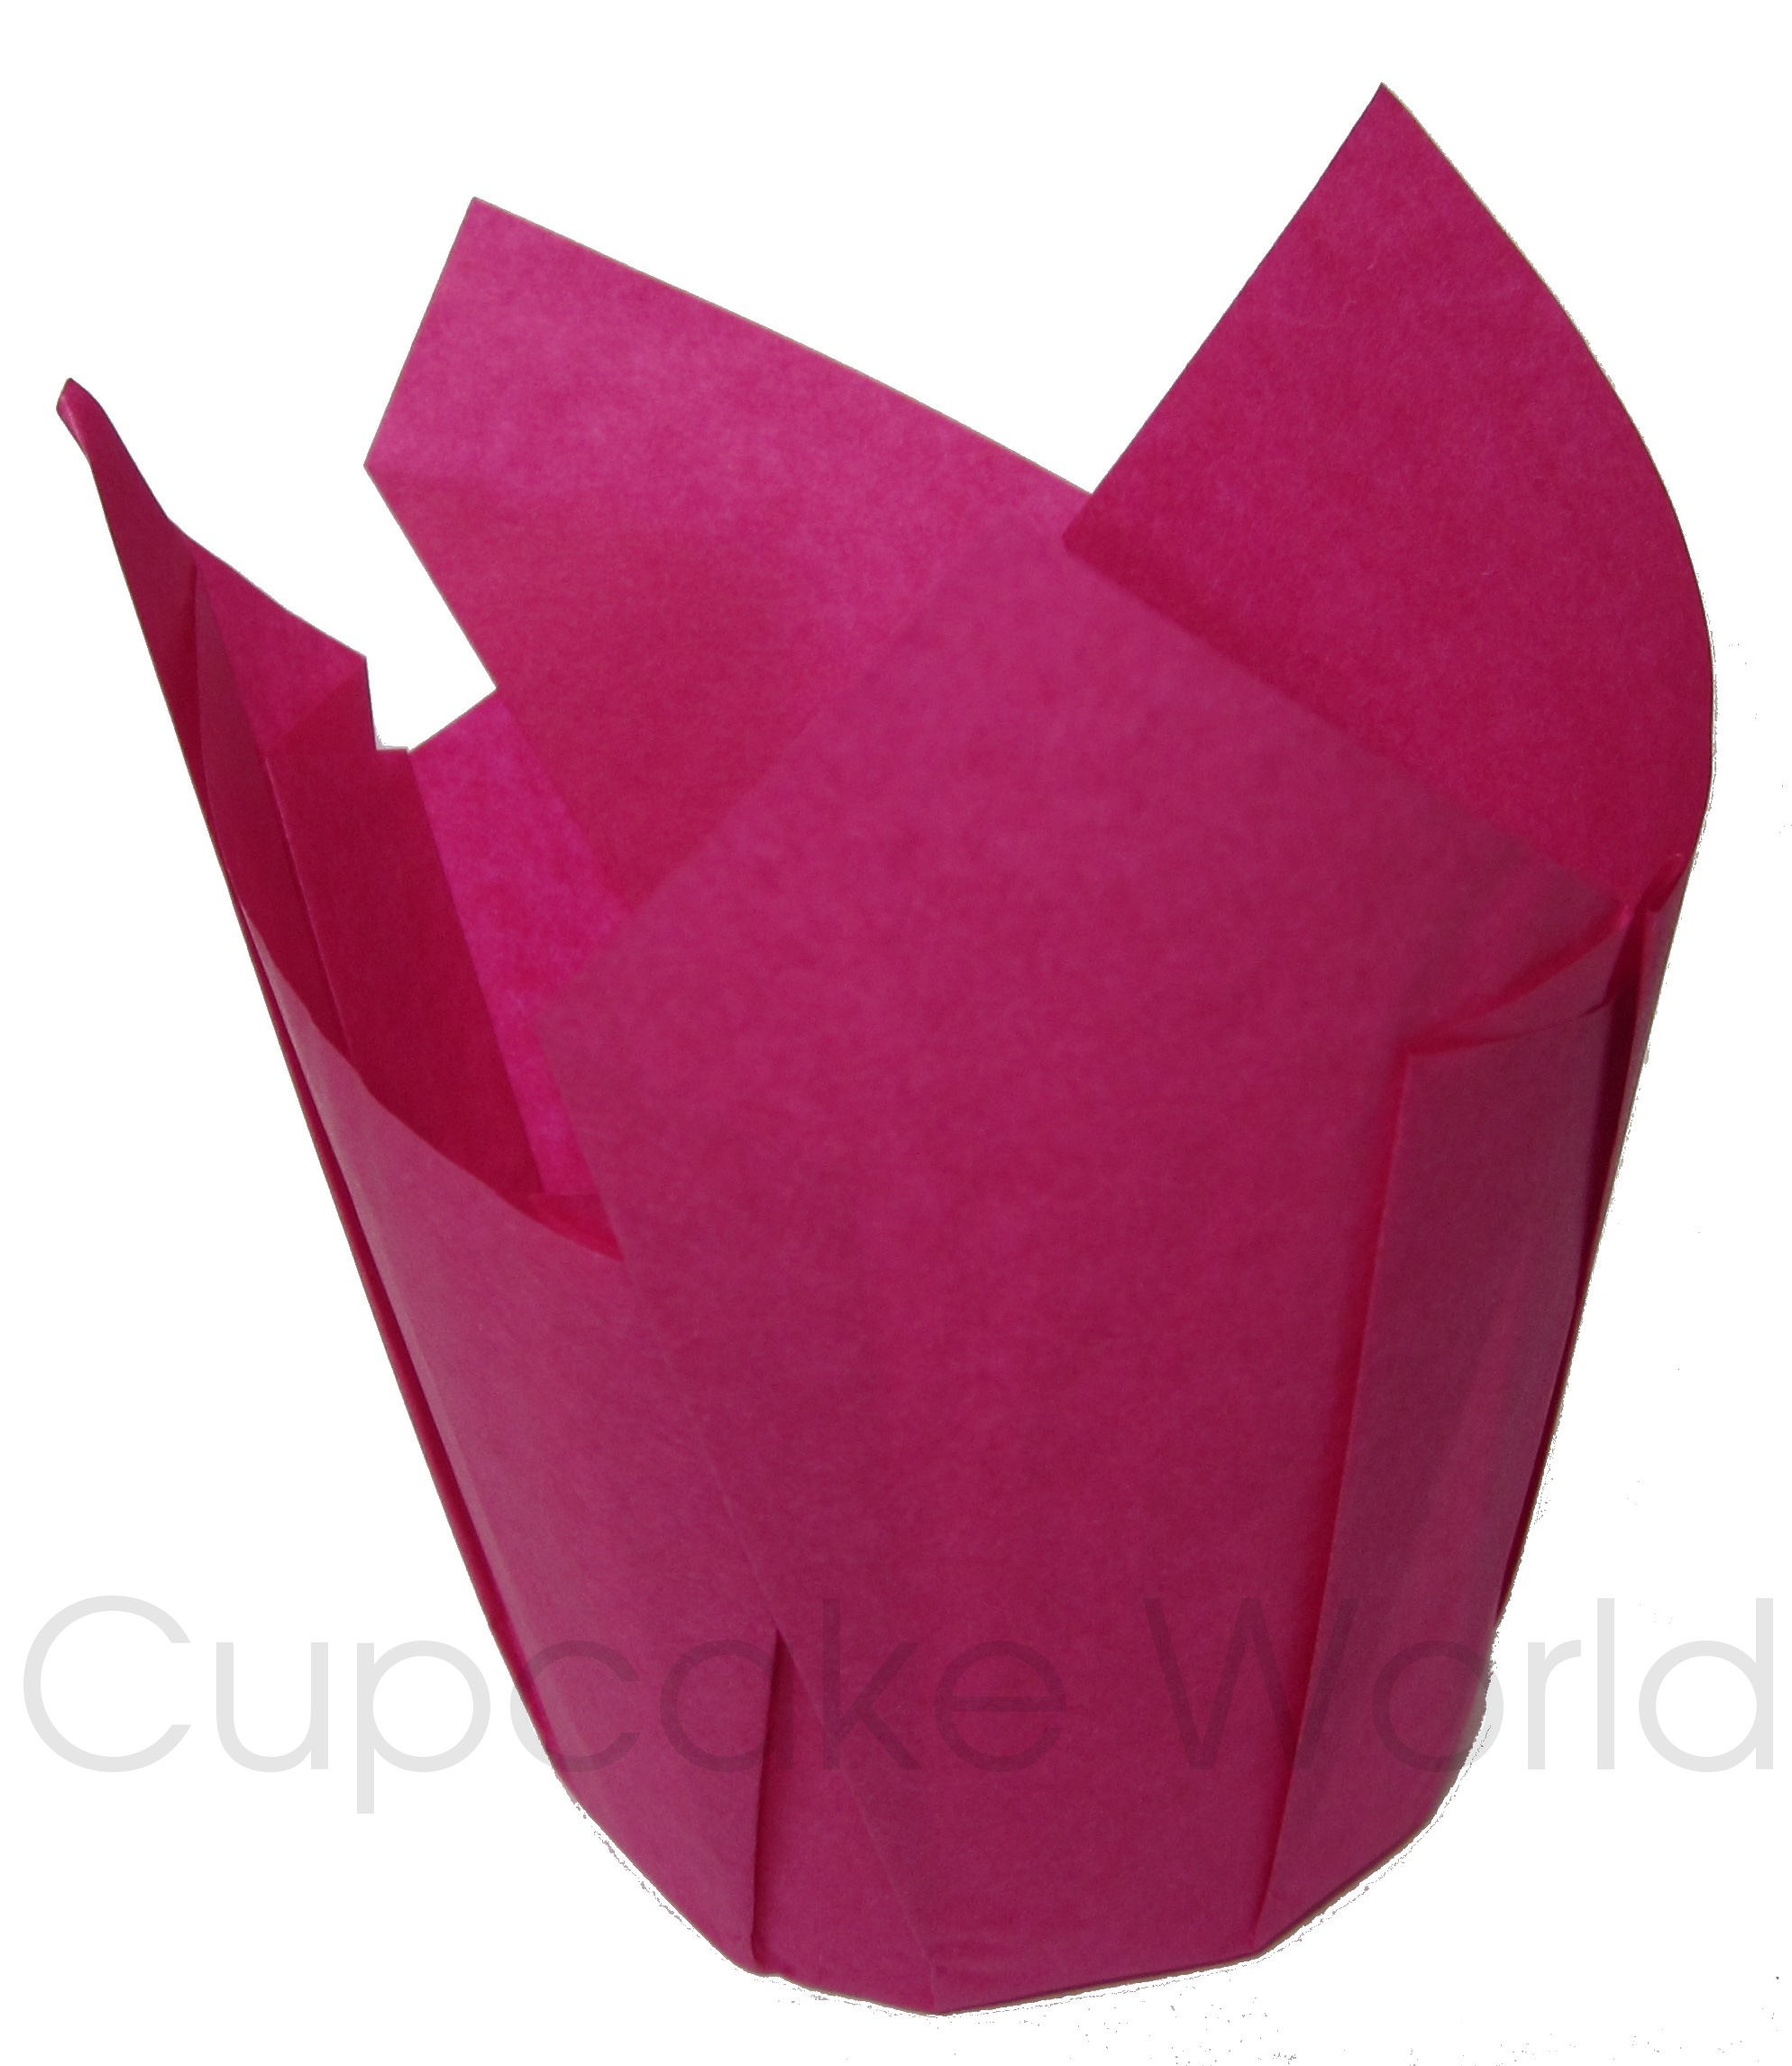 25PC CAFE STYLE HOT PINK PAPER CUPCAKE MUFFIN WRAPS STANDARD